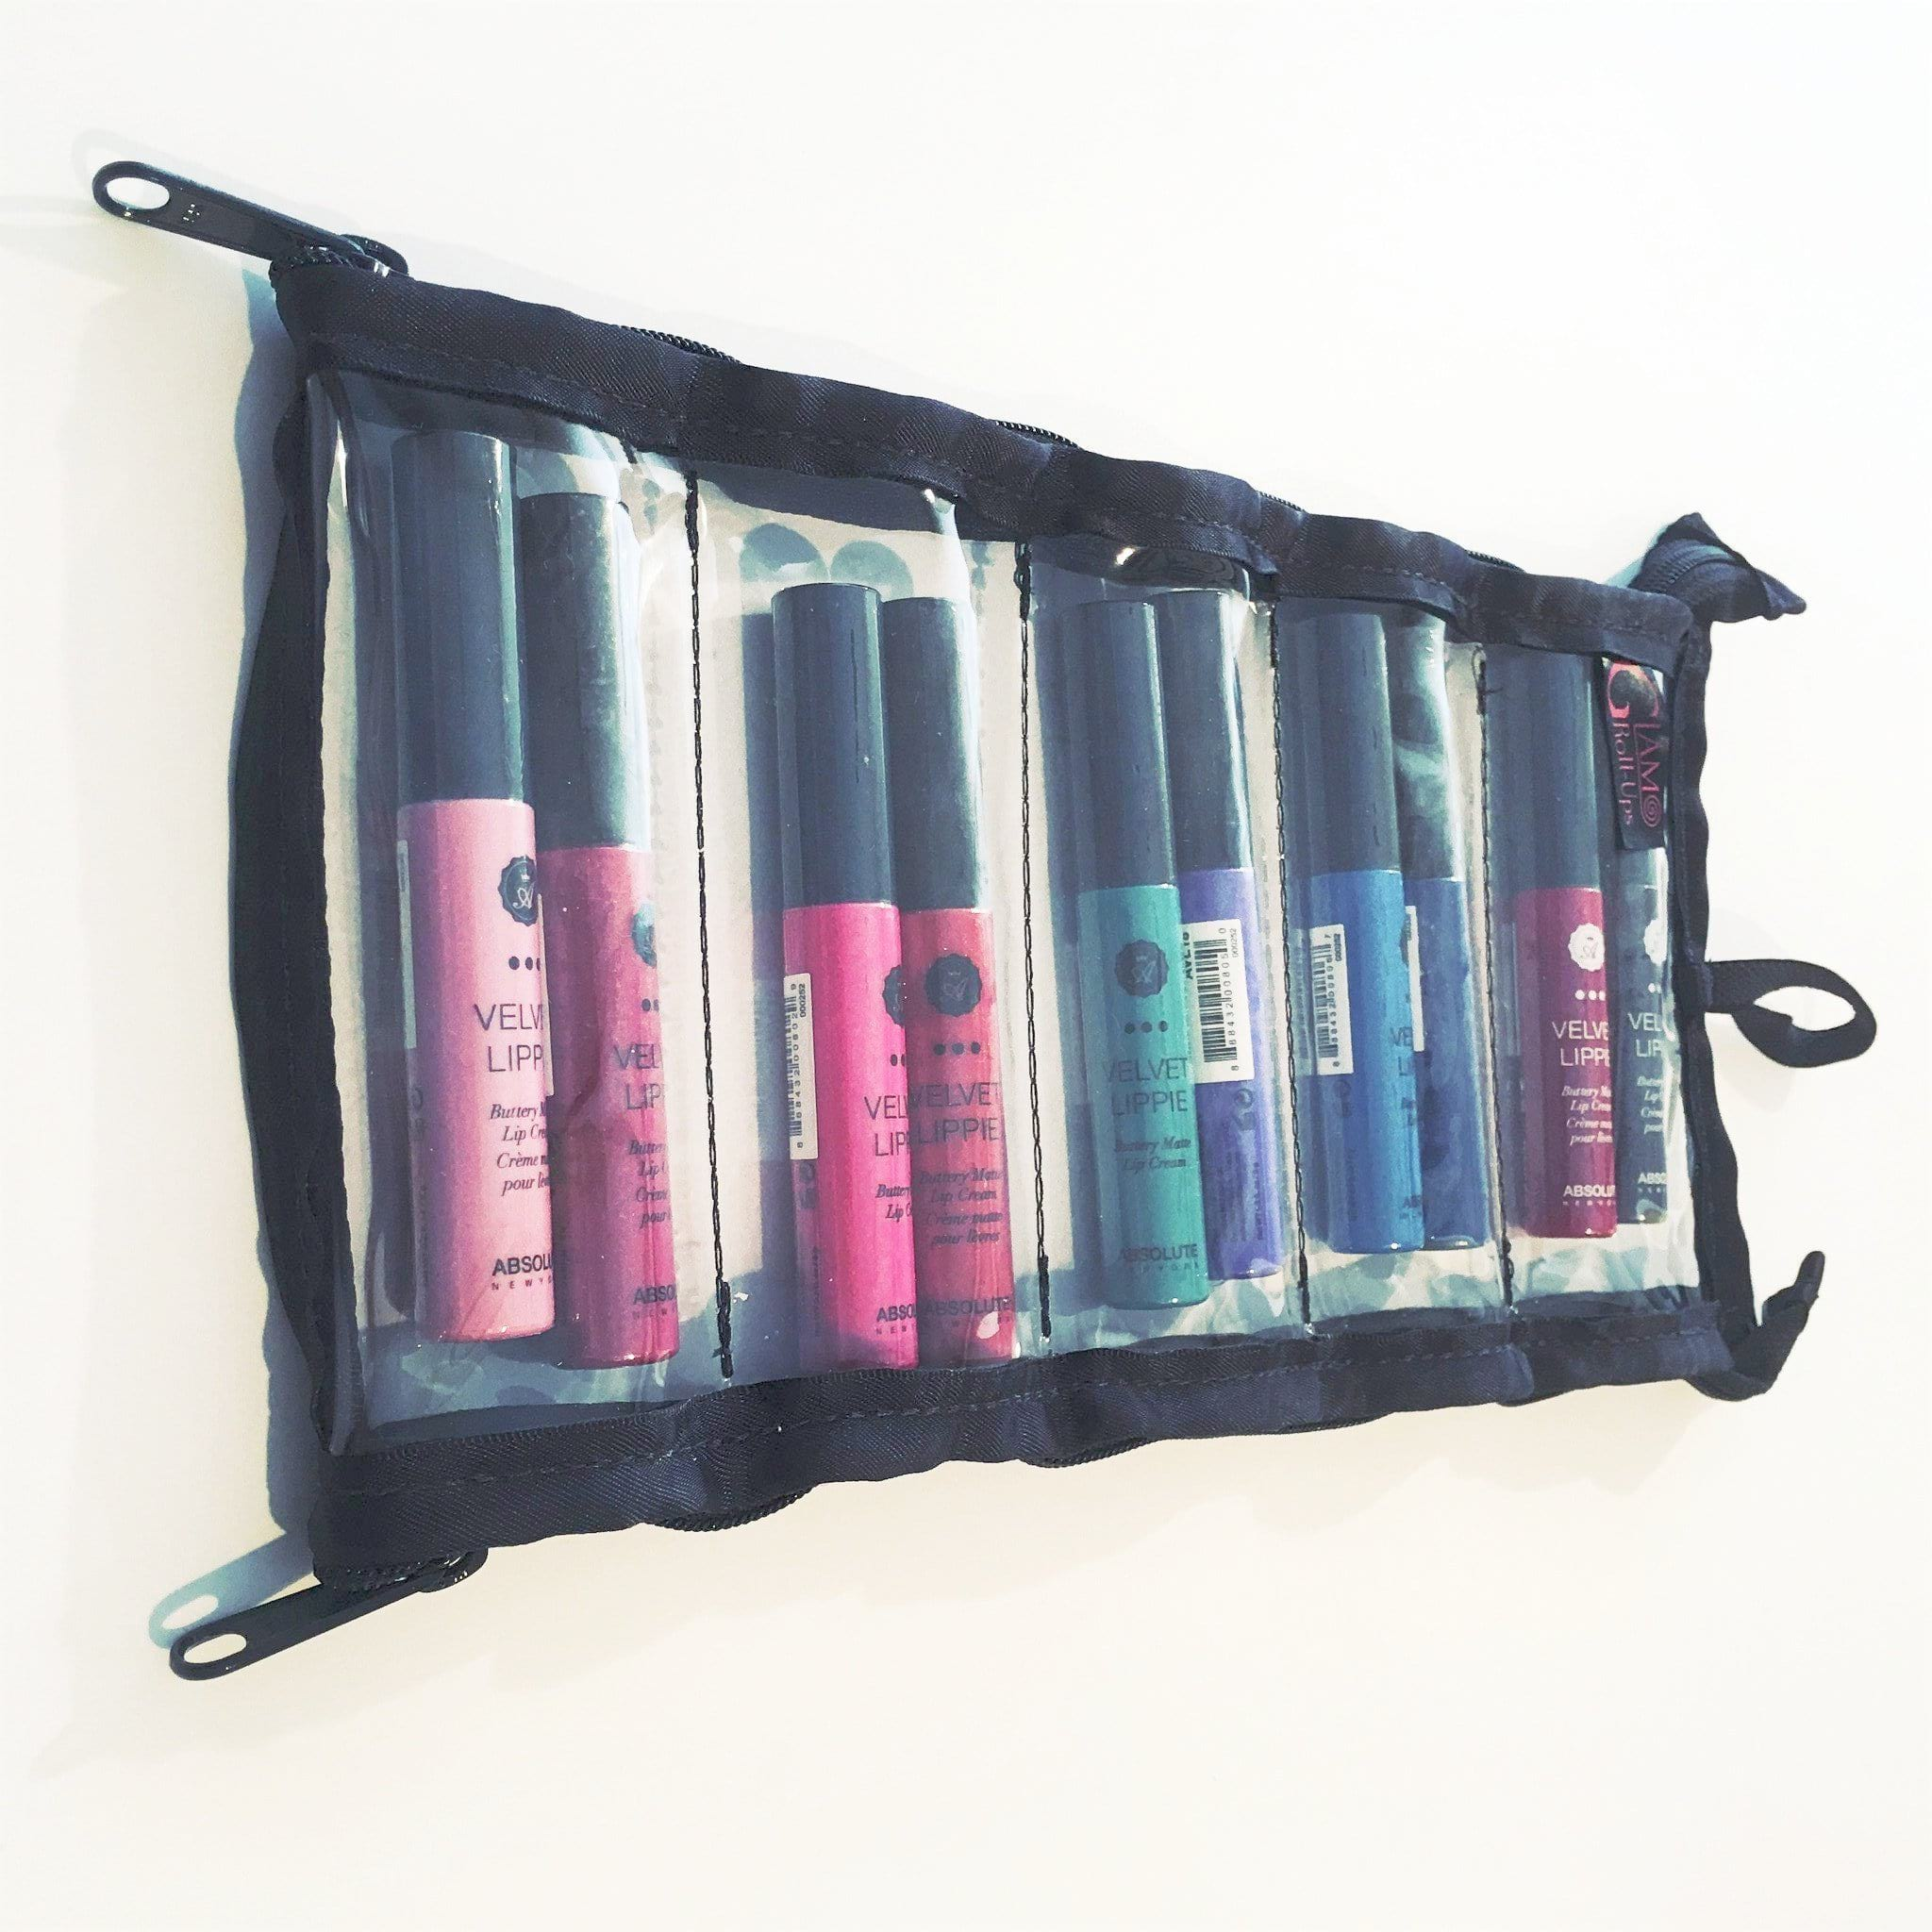 Weekender - Lipstick, Nail Polish, or Barrette Organizer - Glam Roll-Ups